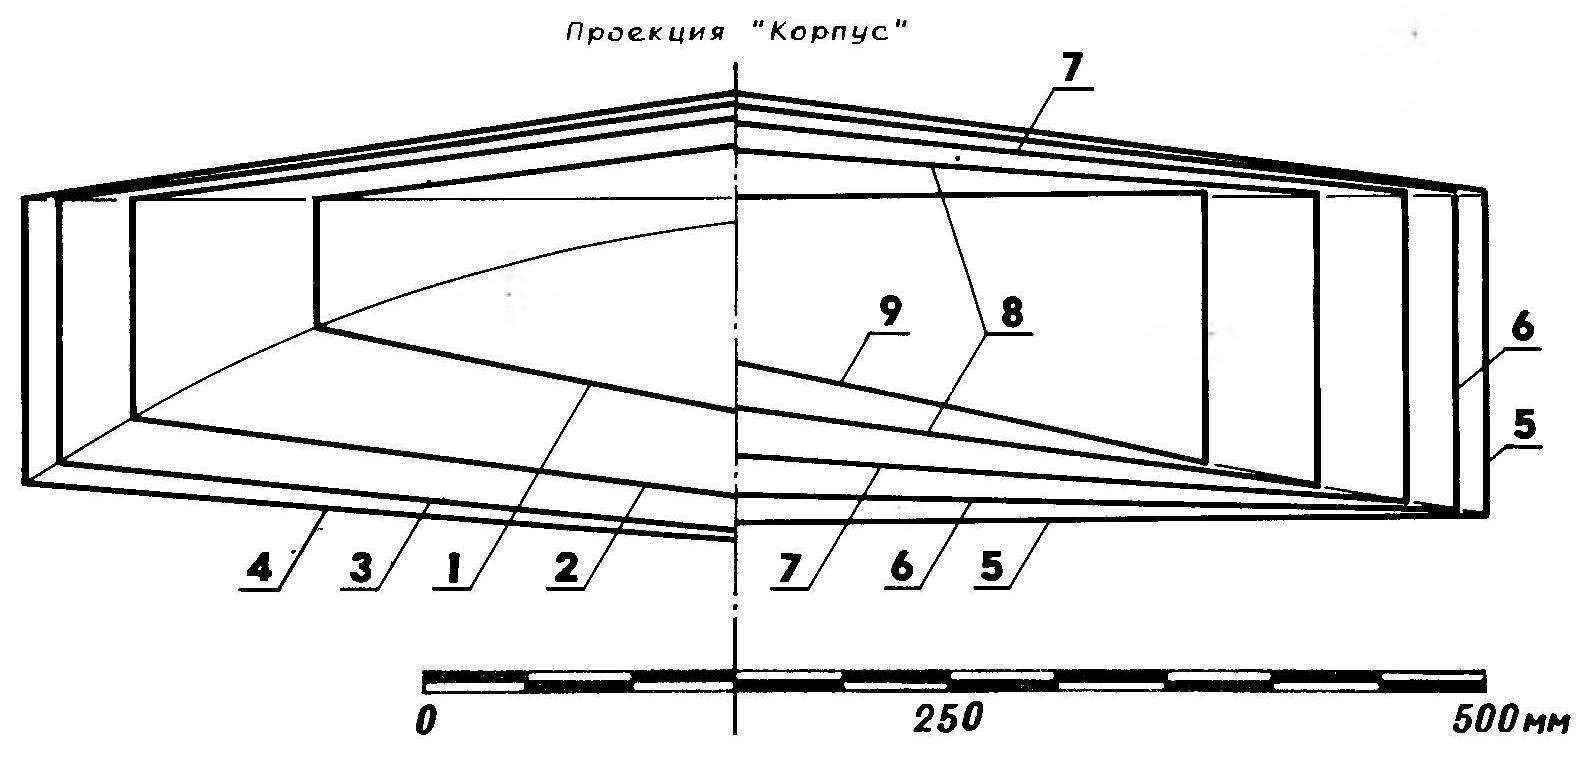 R and p. 3. The theoretical drawing of the hull of a sailing Board